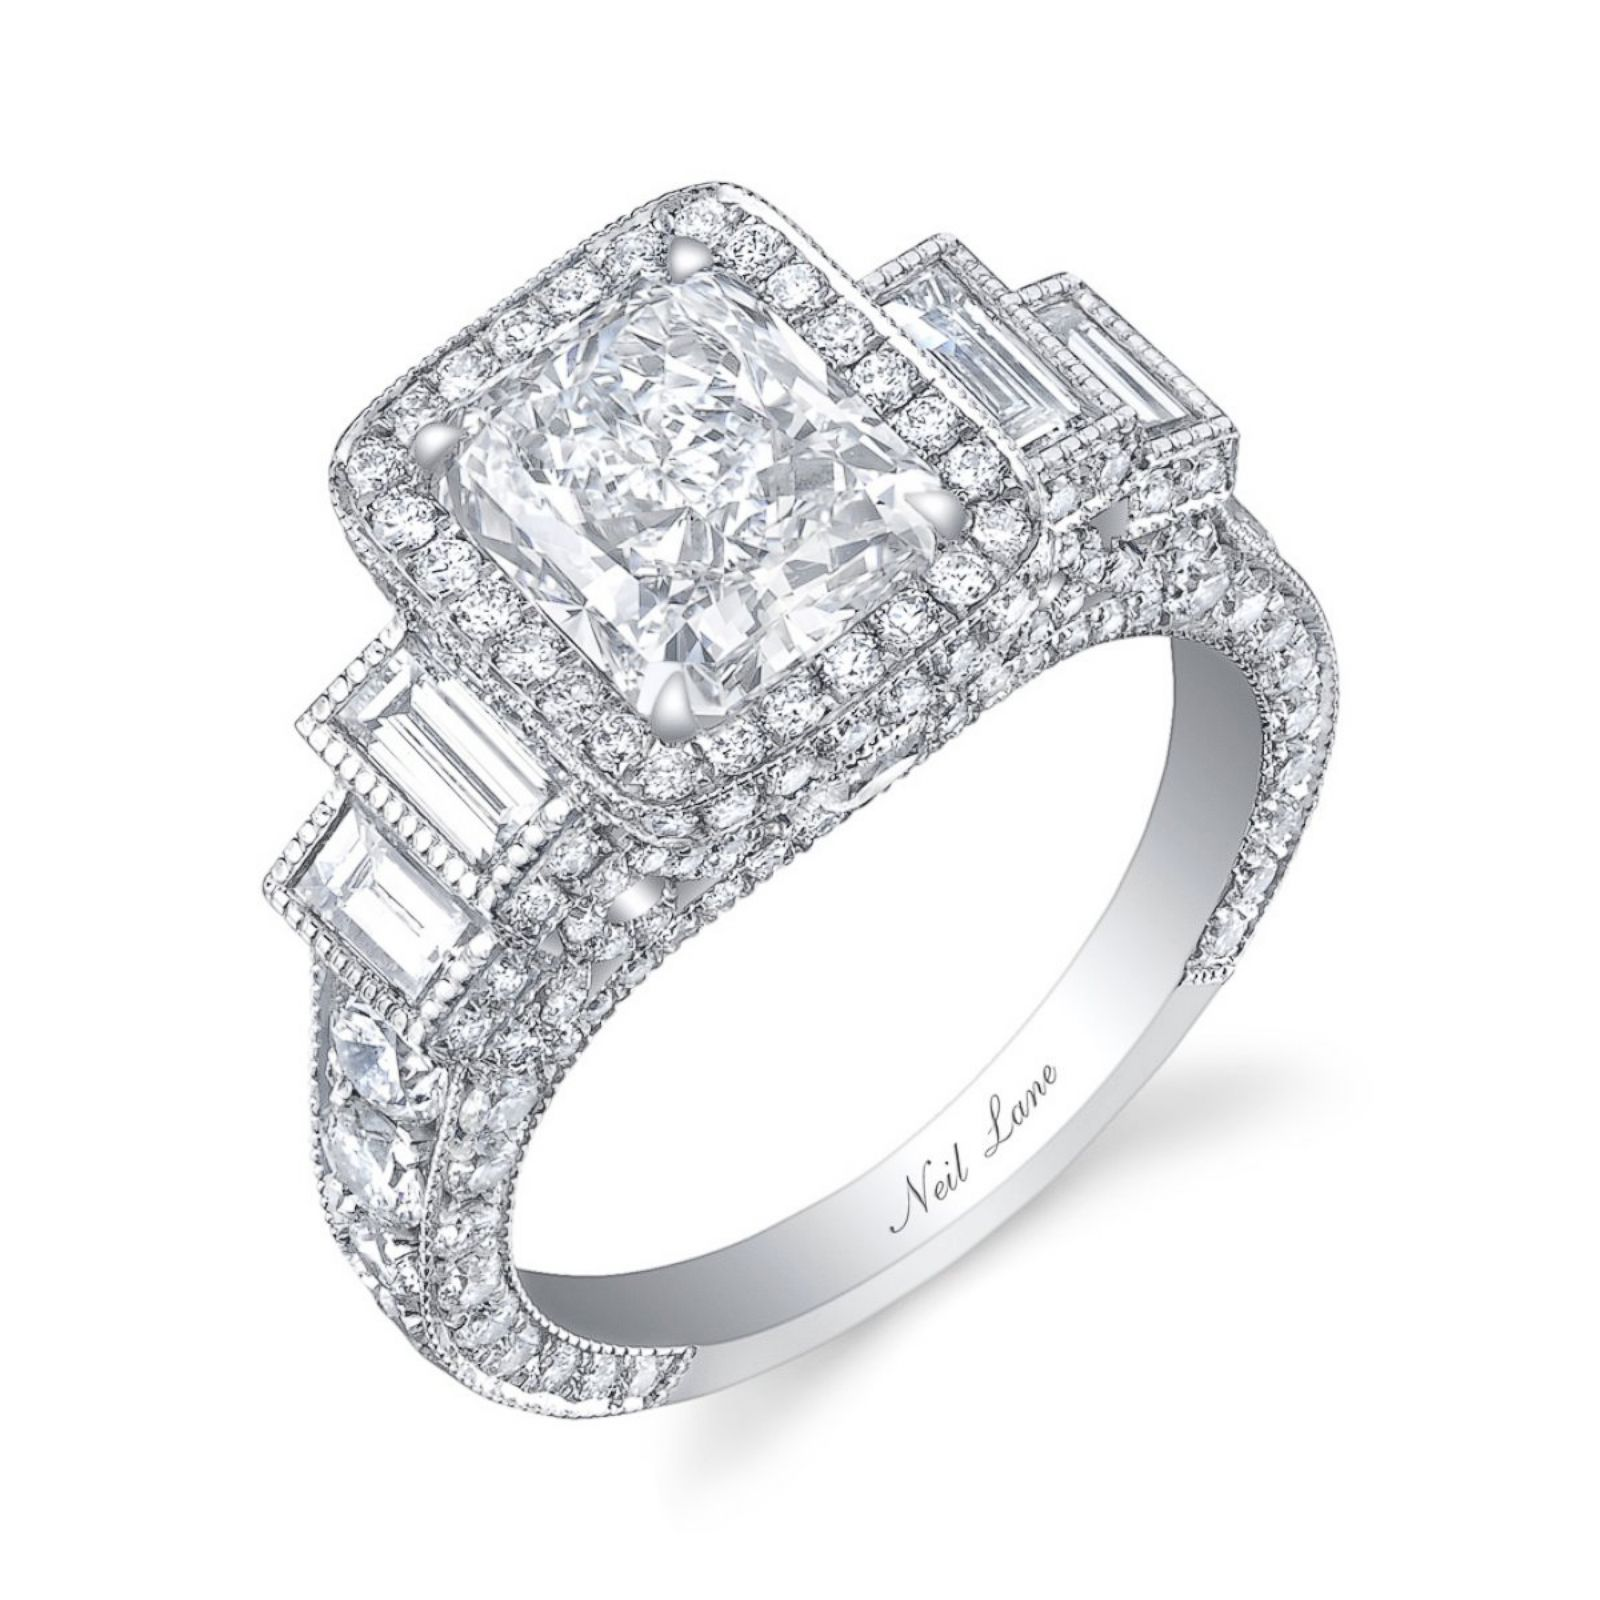 ring perfect massive perspective dept uk diamonds engagement wedding beau from rings diamond gold serendipity white